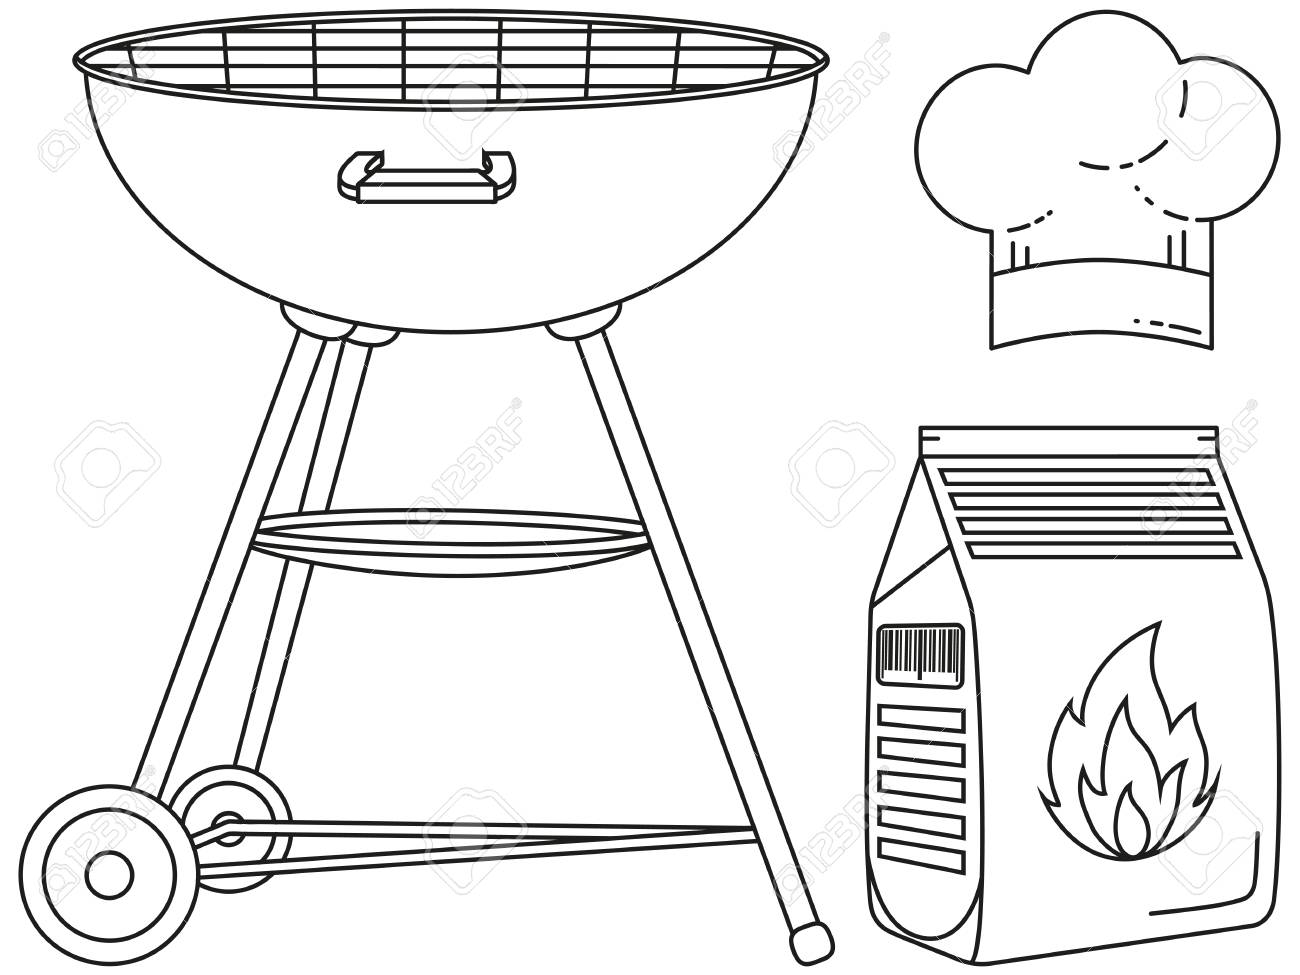 Line Art Black And White Outdoors Cooking Set. BBQ Grill, Coal ...